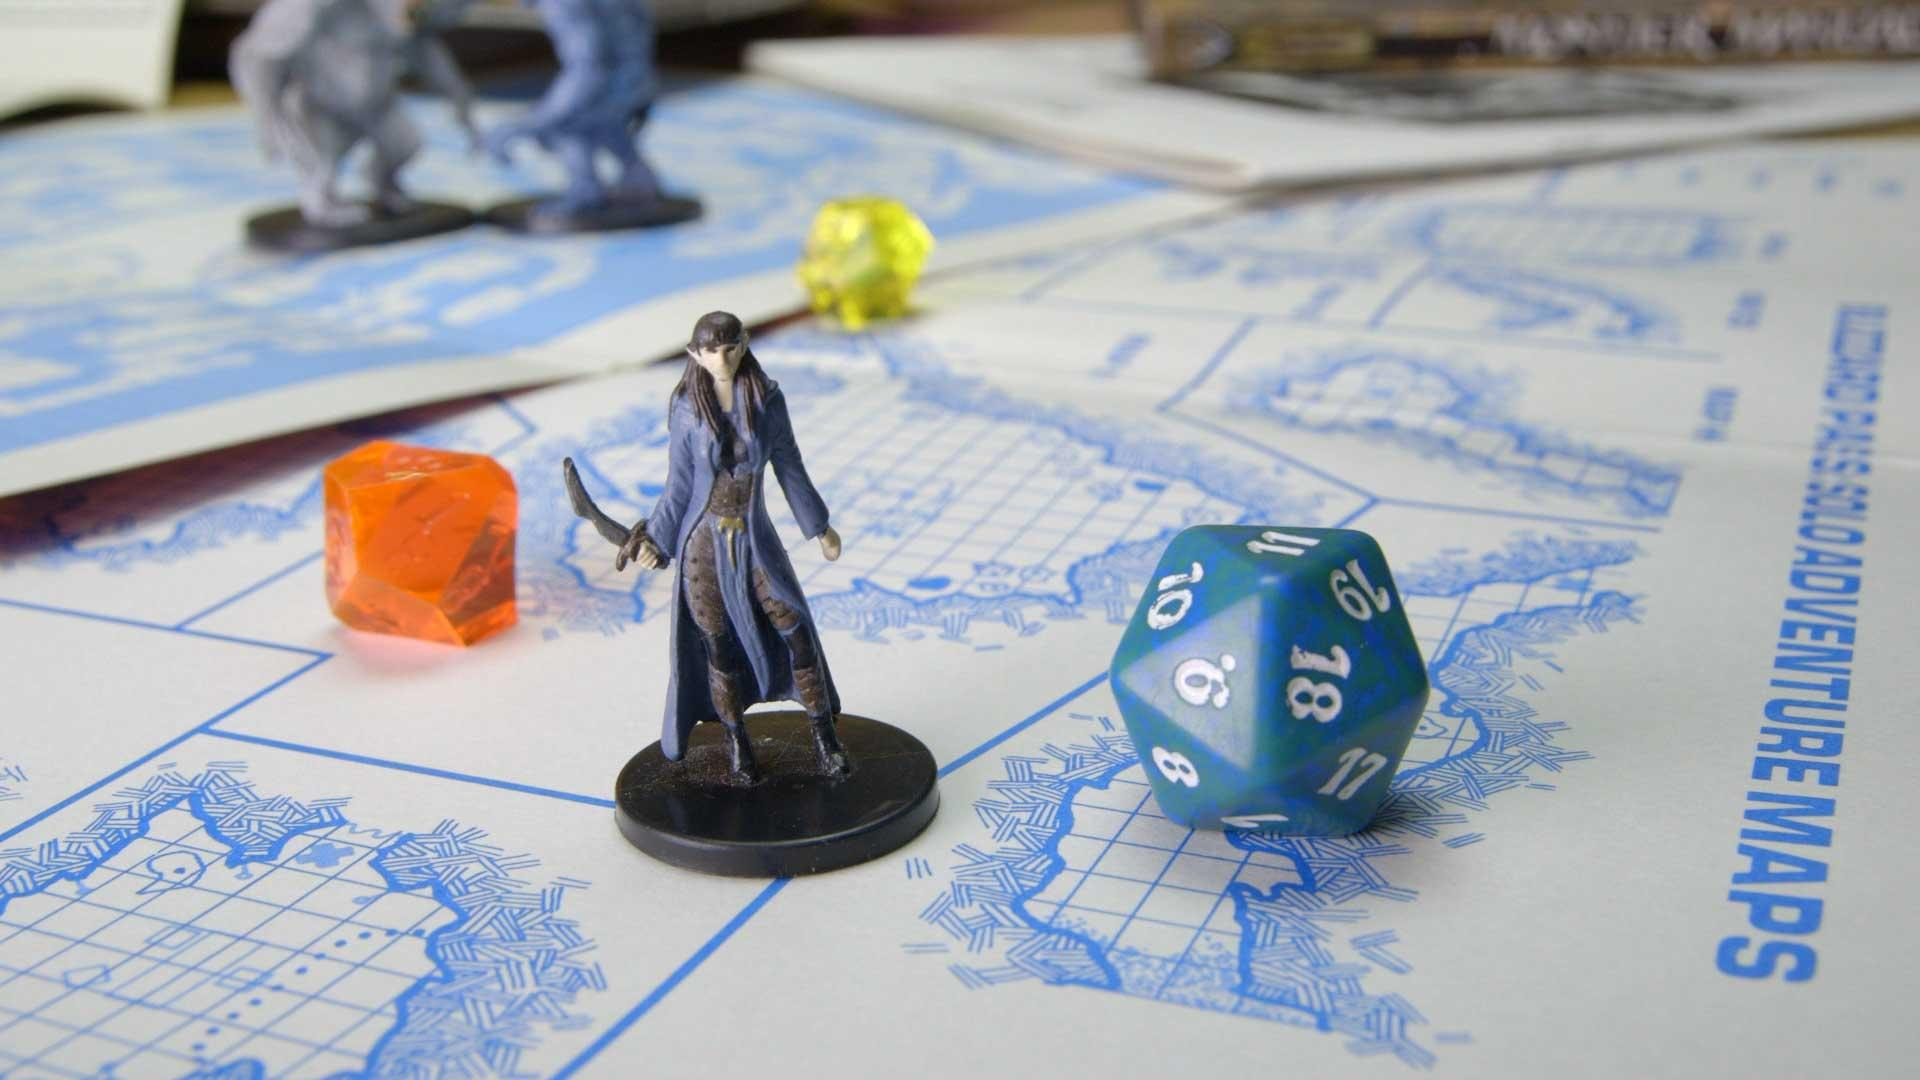 Could Dungeons and Dragons Help Fight Screen Addiction?